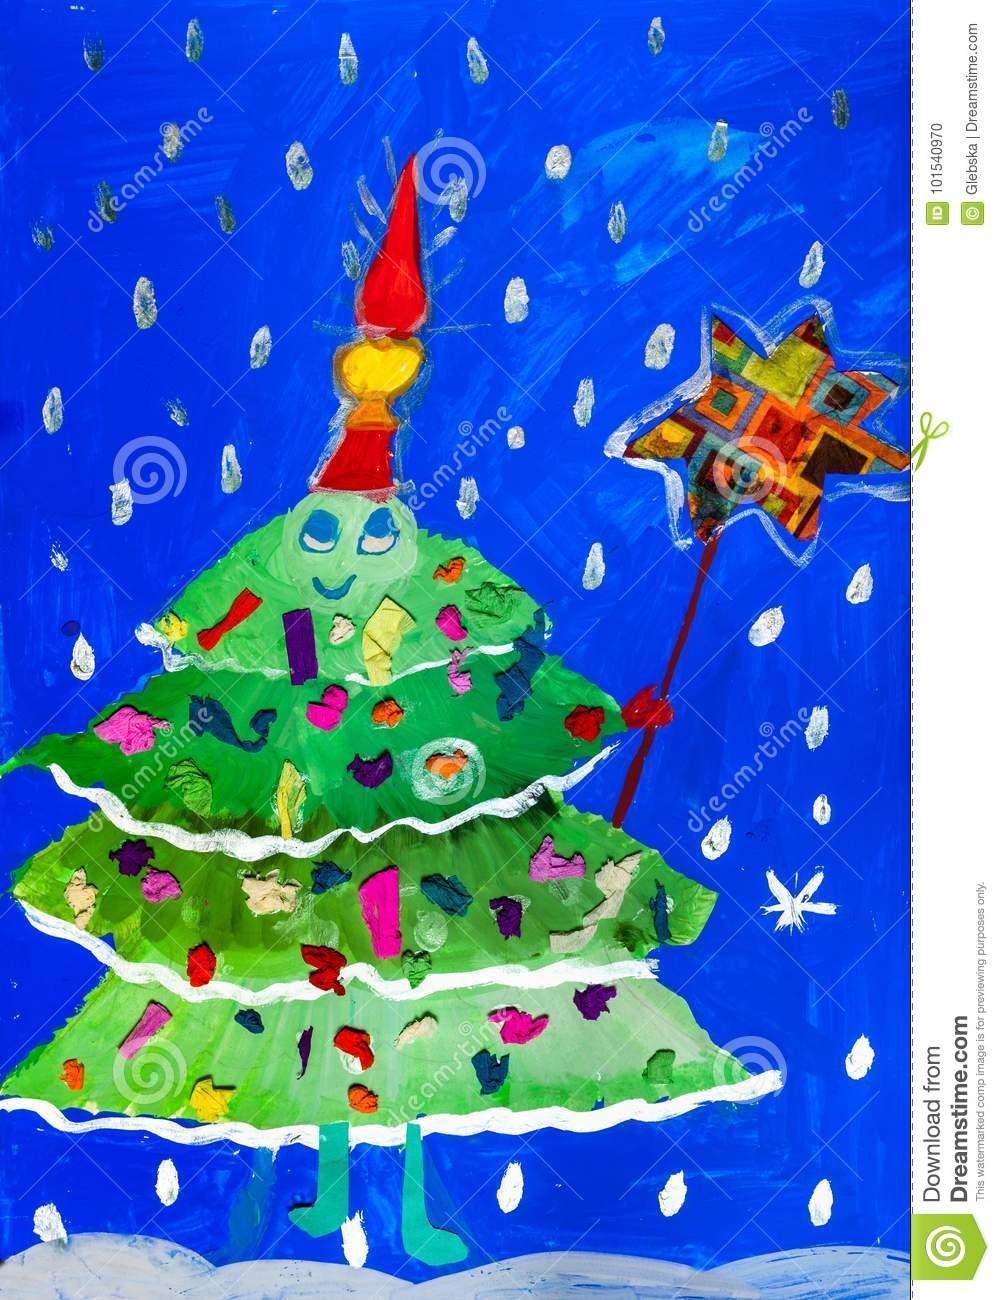 Children S Drawing Green Decorated Christmas Tree Stock